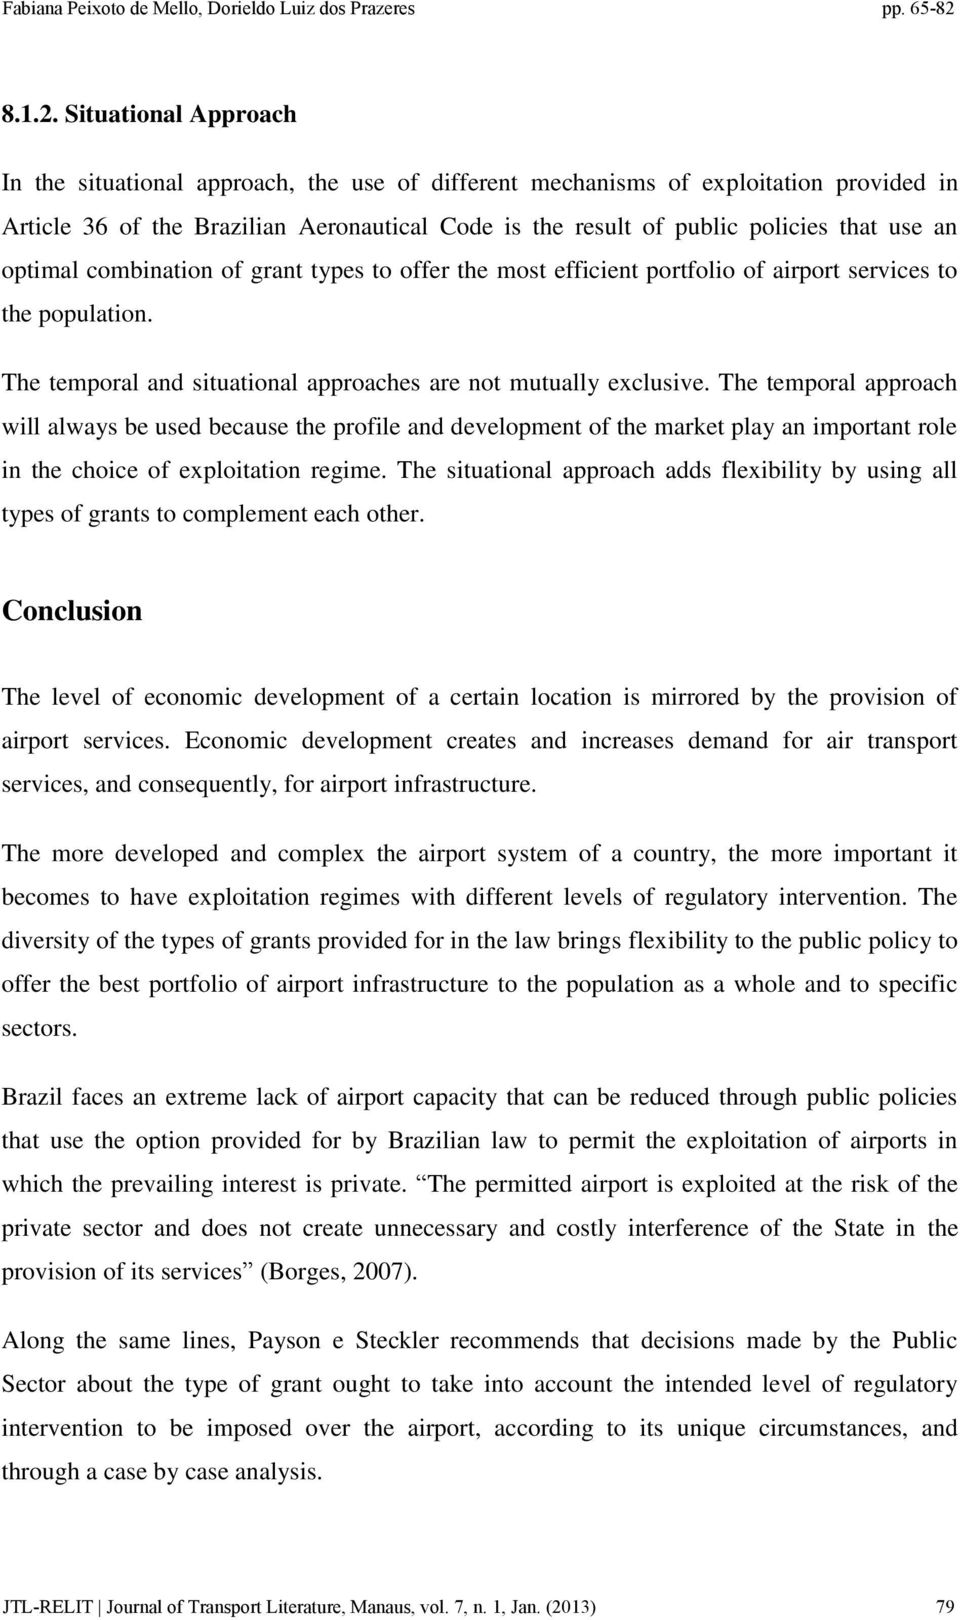 an optimal combination of grant types to offer the most efficient portfolio of airport services to the population. The temporal and situational approaches are not mutually exclusive.